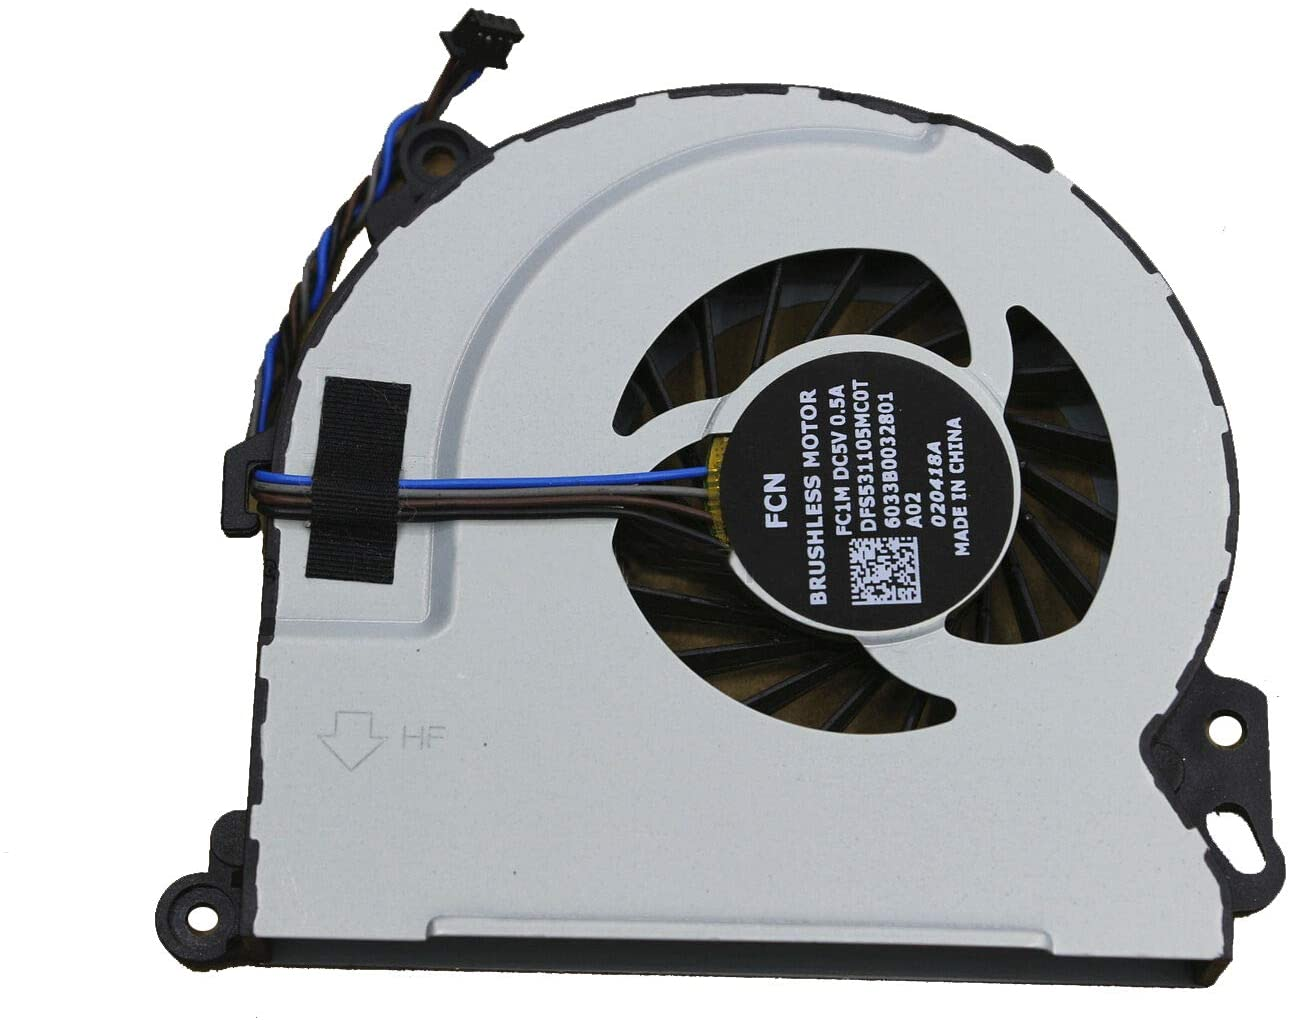 GIVWIZD Laptop Replacement CPU Cooling Fan for HP Envy 15-j063ei 15-j066ez 15-j075nr 15-j078ez 15-j084ca 15-j084nr 15-j015tx